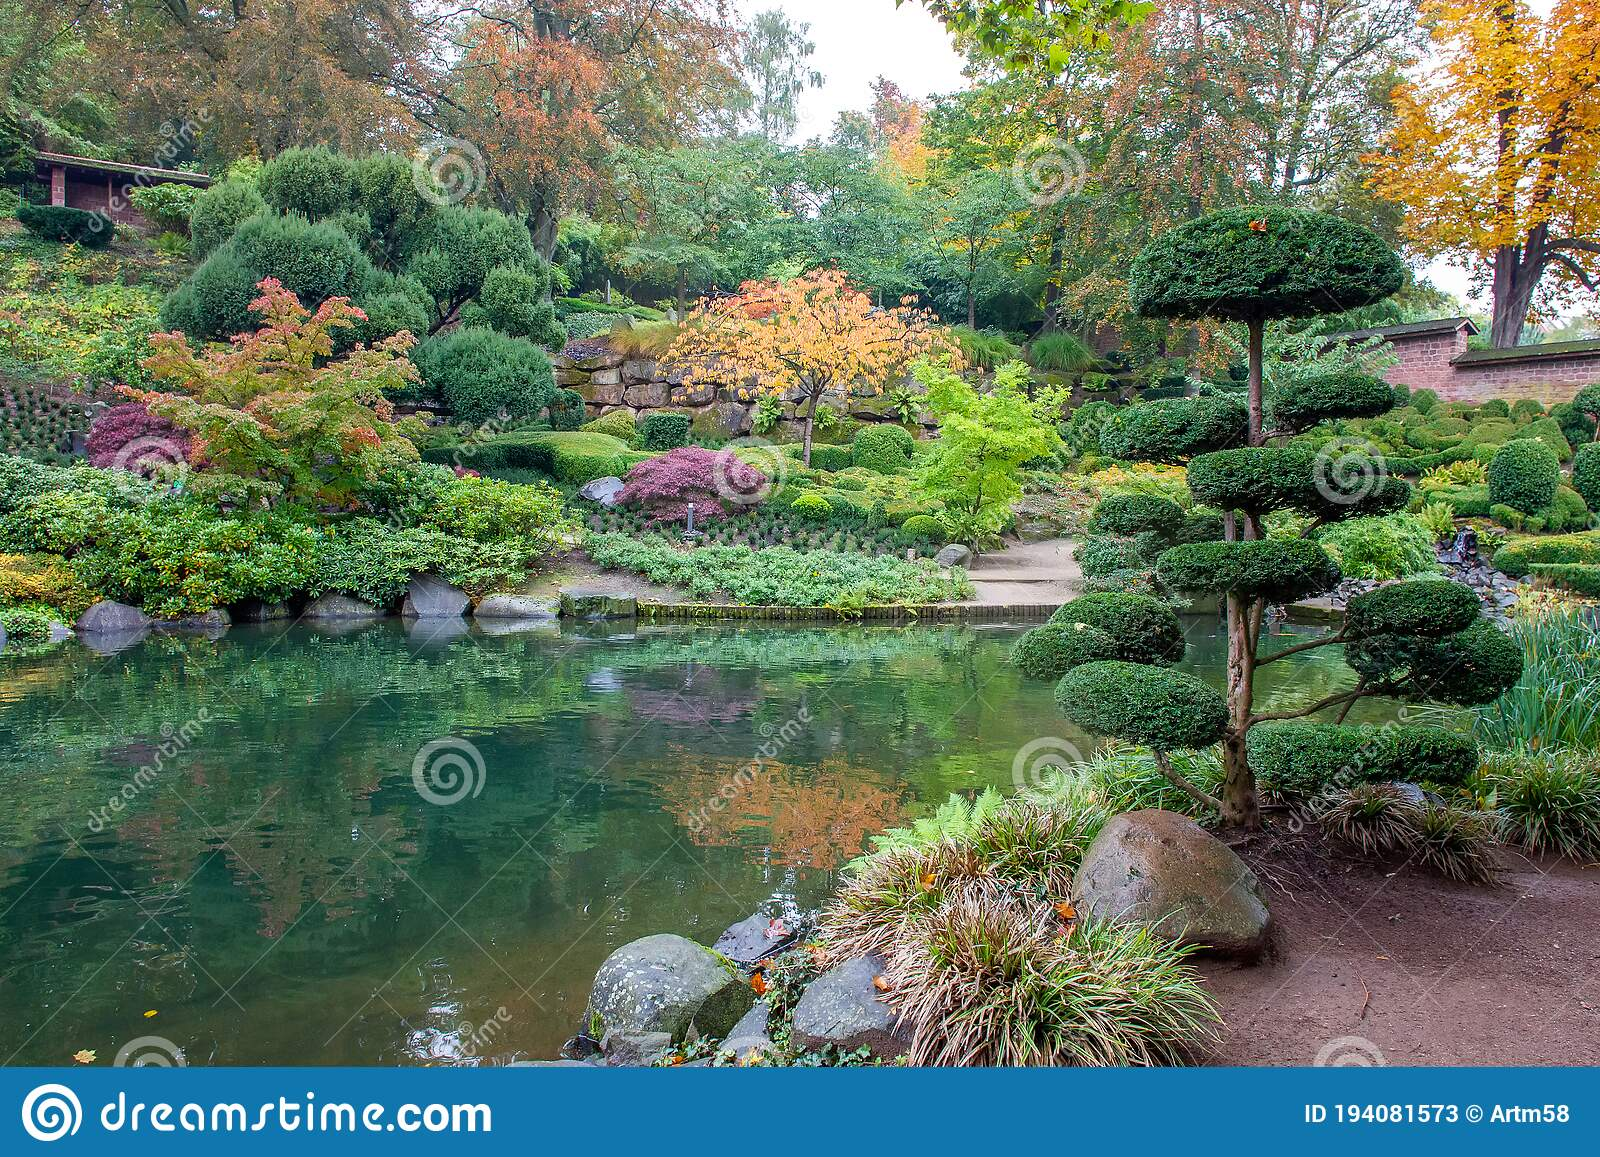 Amazing Water Fall In Japanese Garden In Autumn In Kaiserslautern In Germany Stock Image Image Of Fish Water 194081573